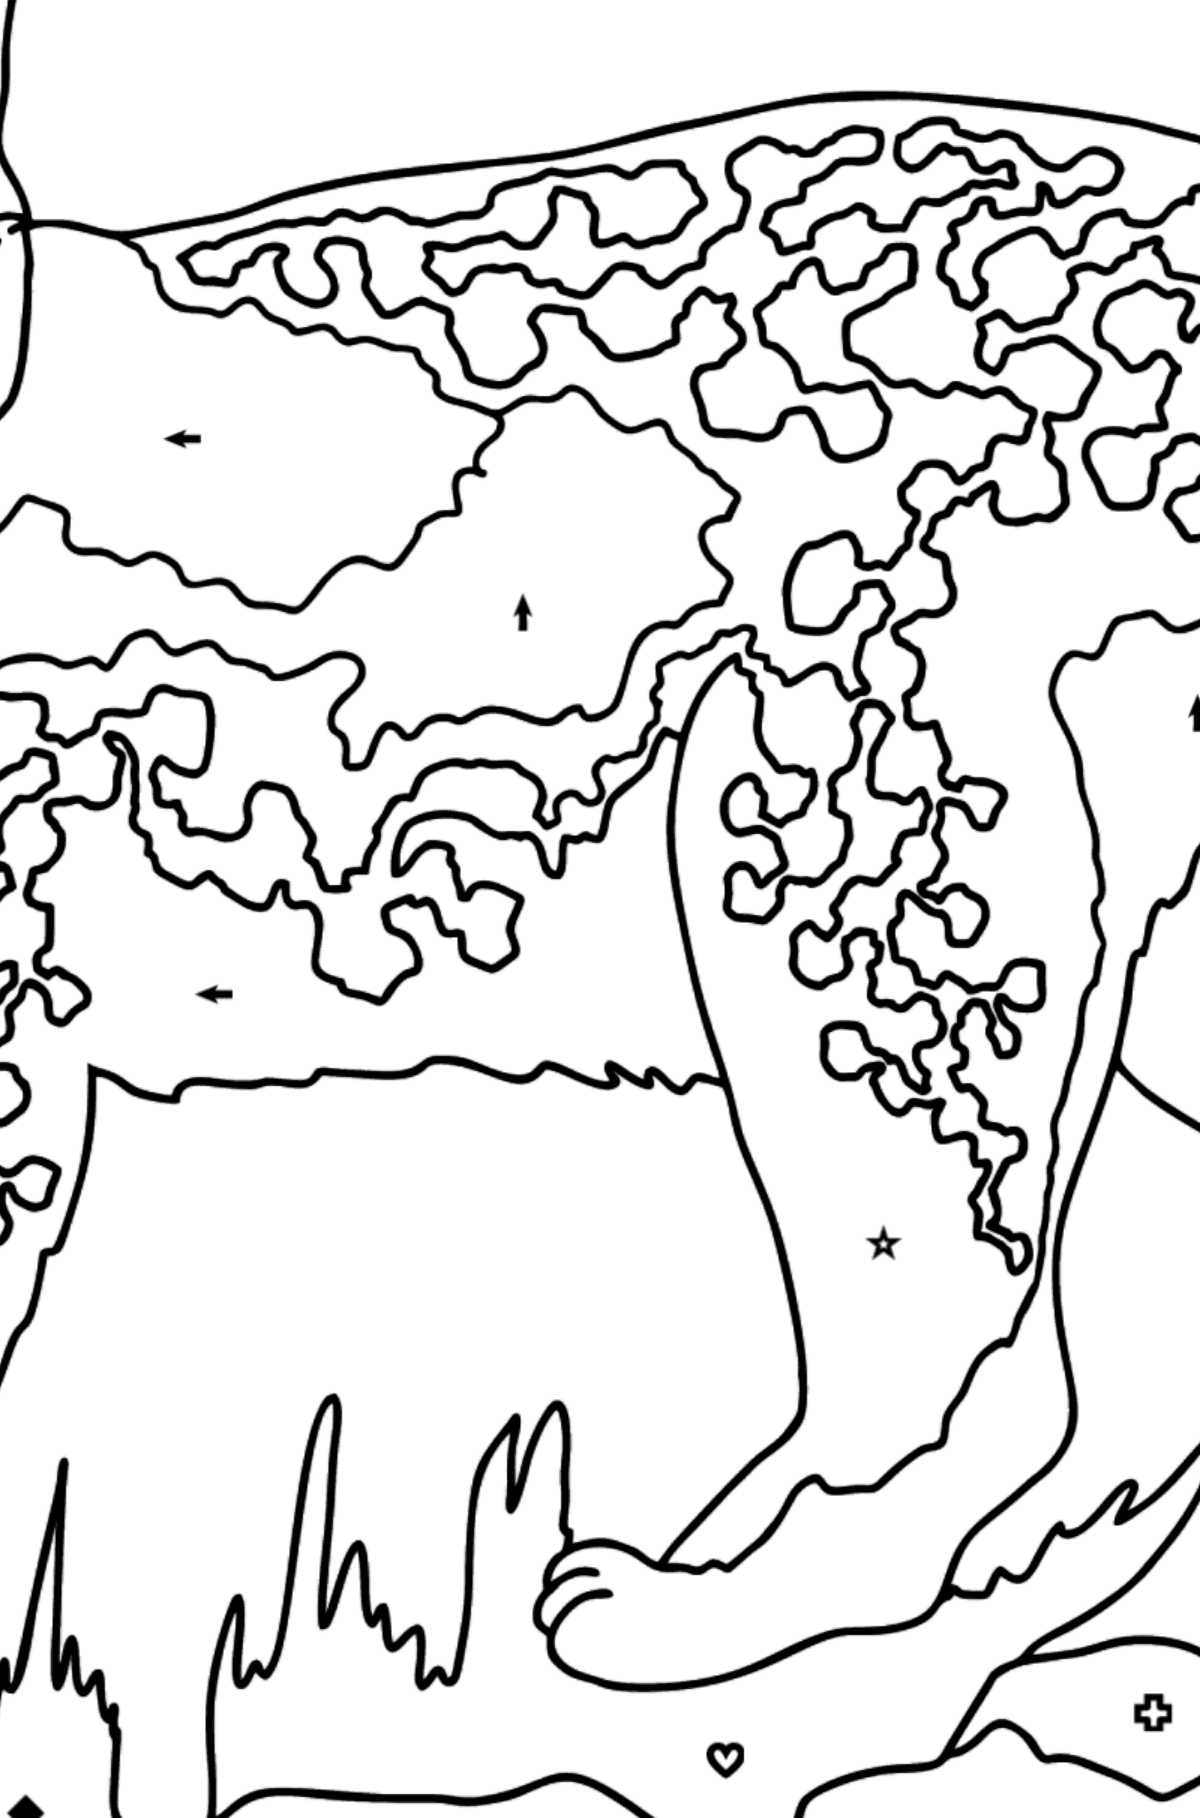 Coloring Page - A Wild Lynx - Coloring by Symbols and Geometric Shapes for Kids